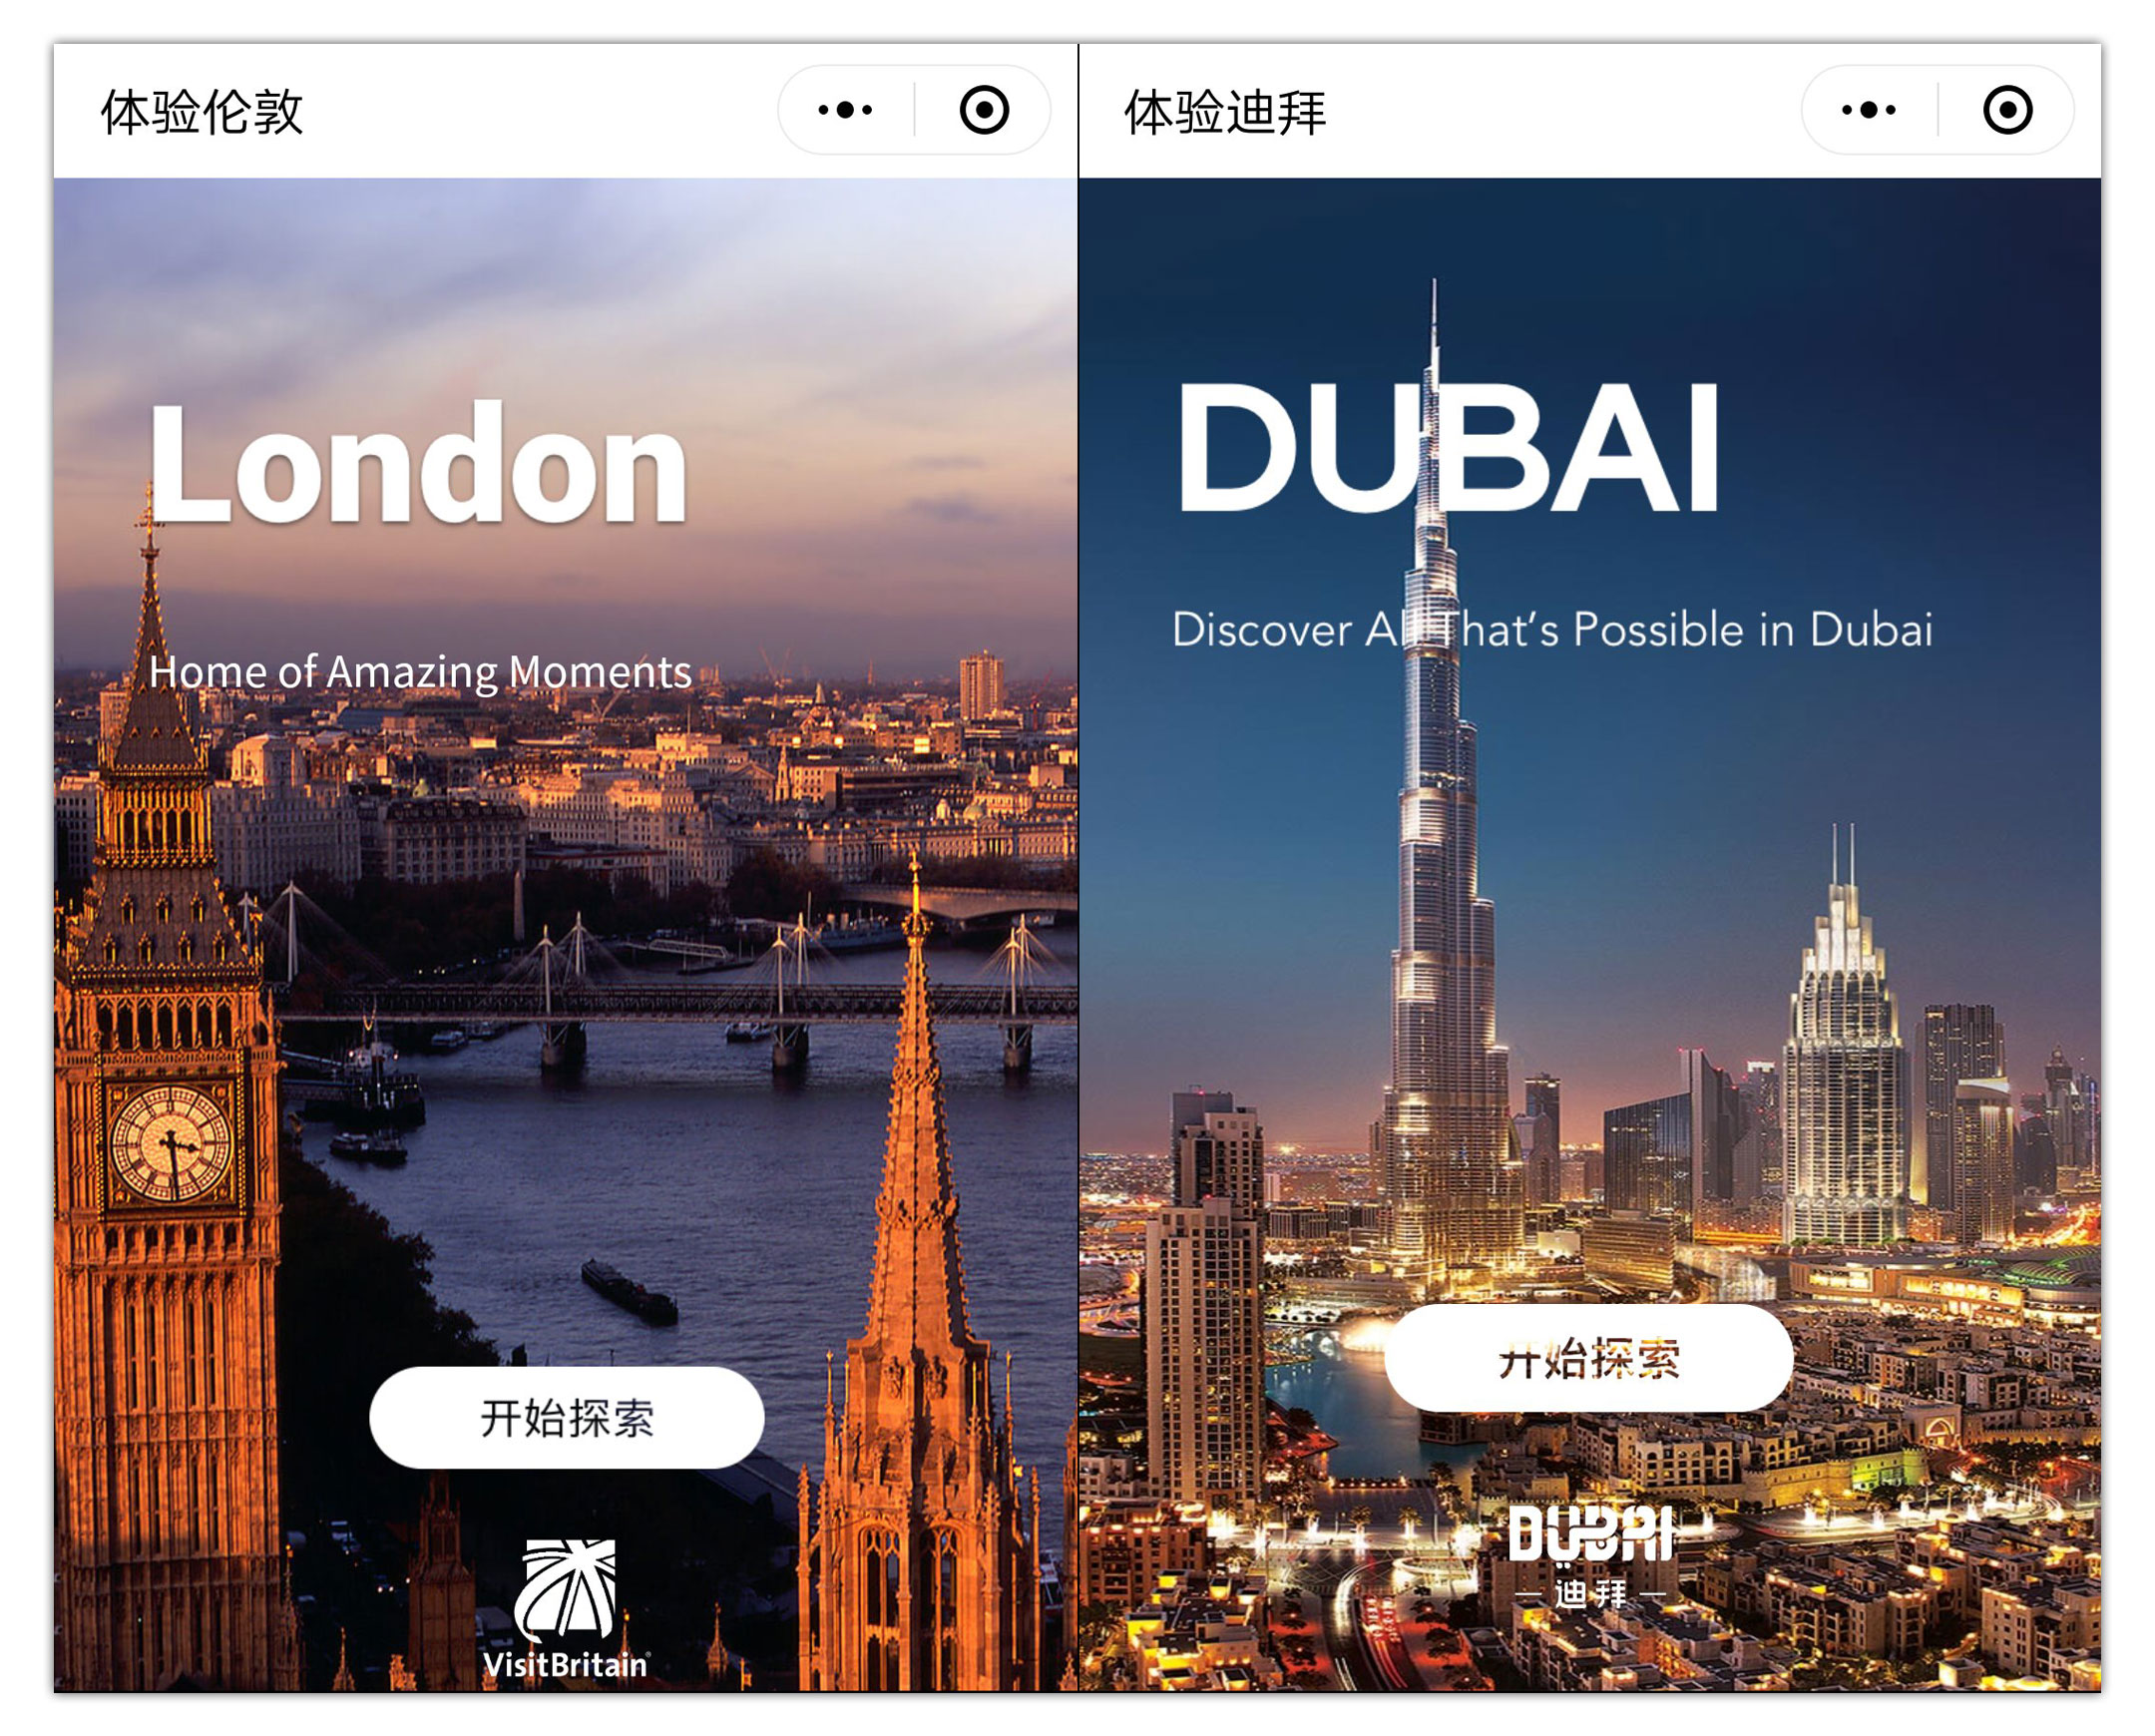 London Dubai WeChat Mini Programs